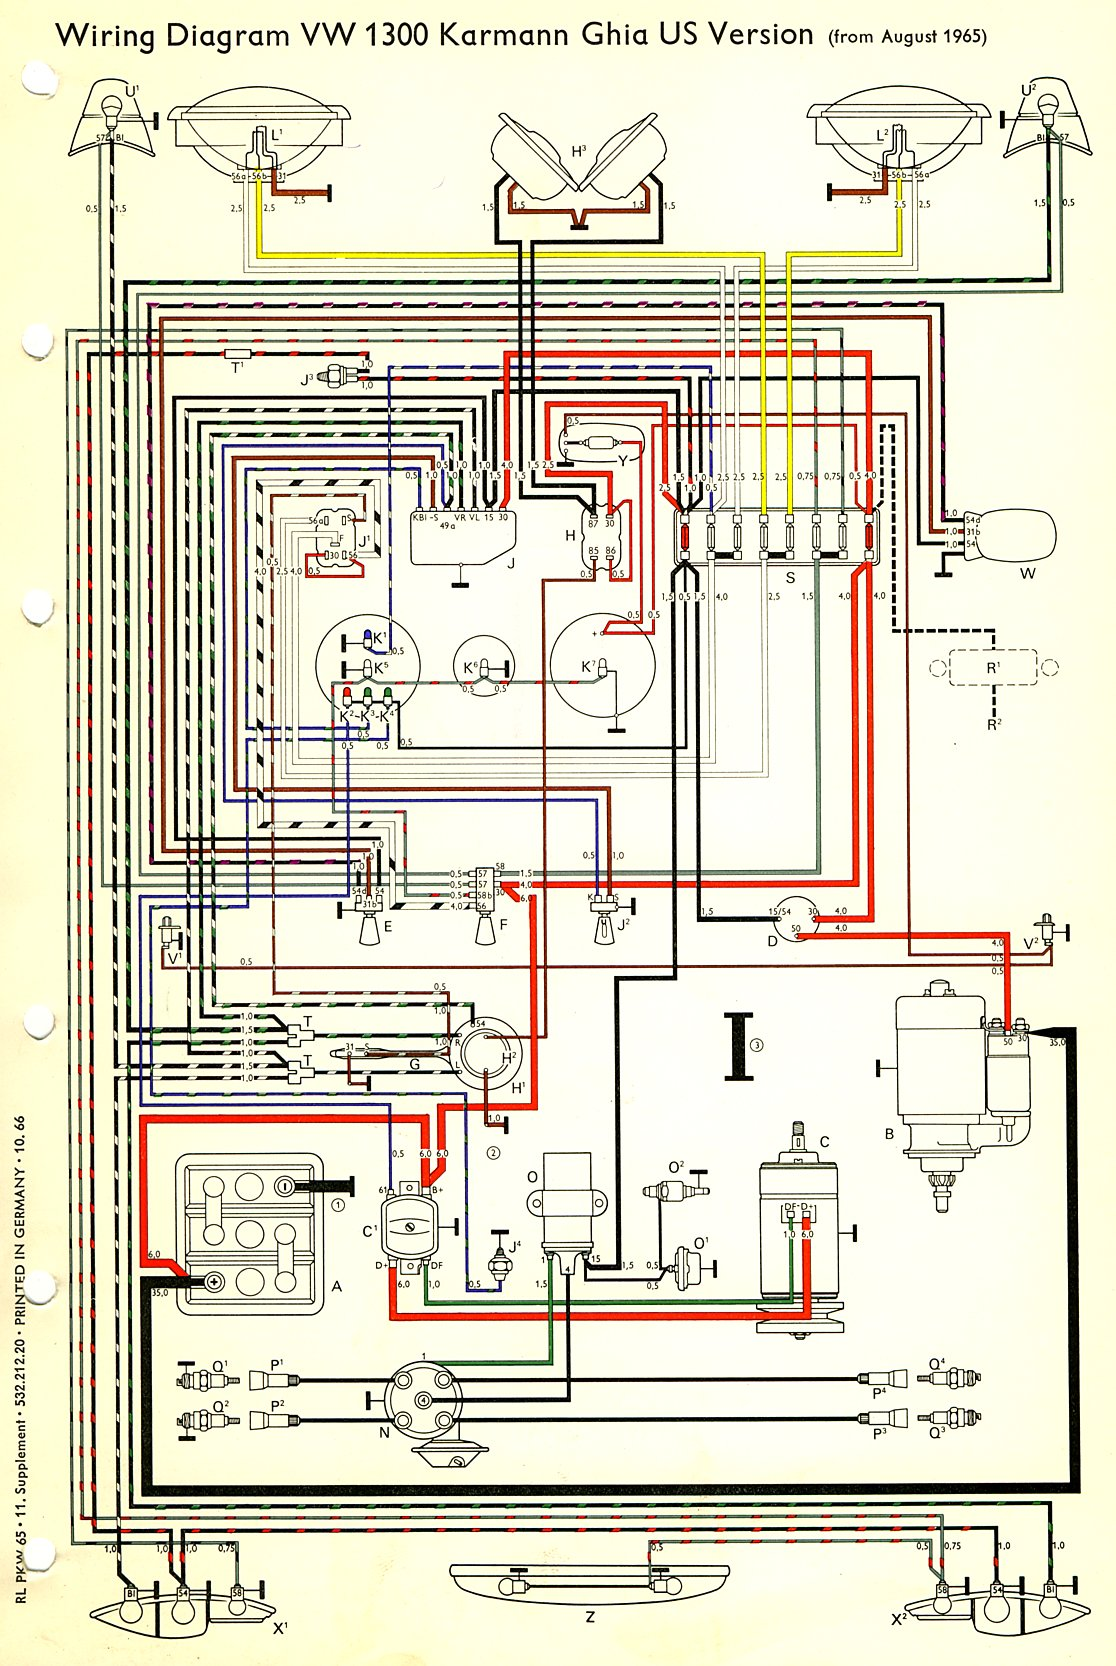 1971 Beetle Fuse Box Custom Project Wiring Diagram Free Auto Vw And Super Thesamba Com Karmann Ghia Diagrams